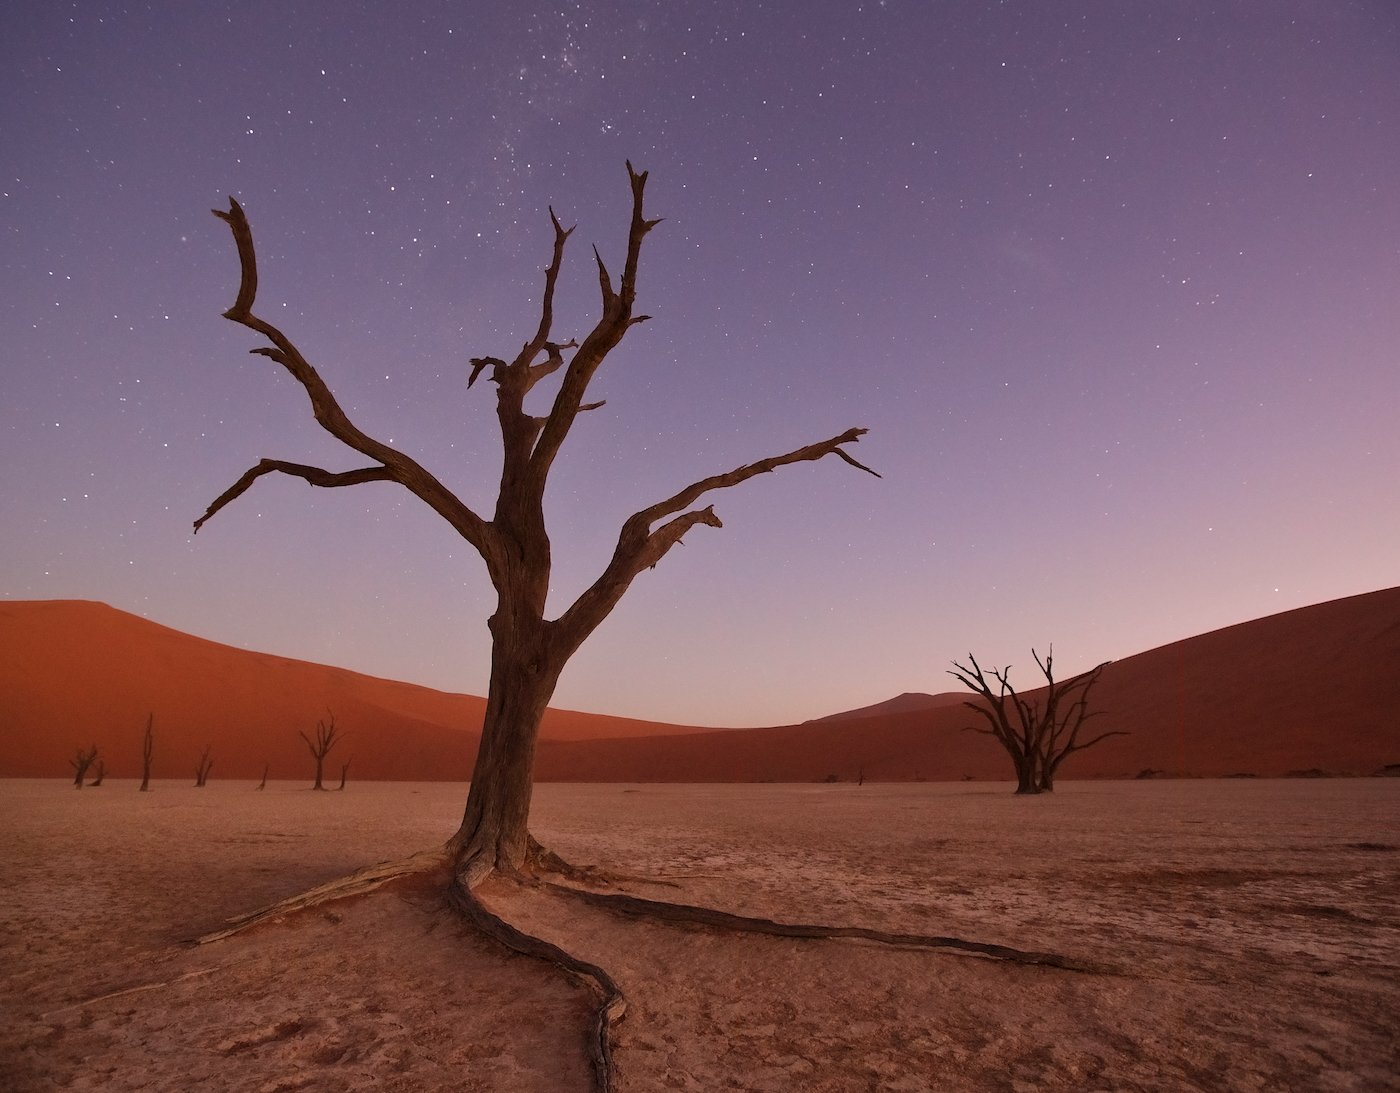 #loveafrica, mc, namibia, намибия, dead vlei, namib naukluft national park, west africa, Маргарита Чернилова